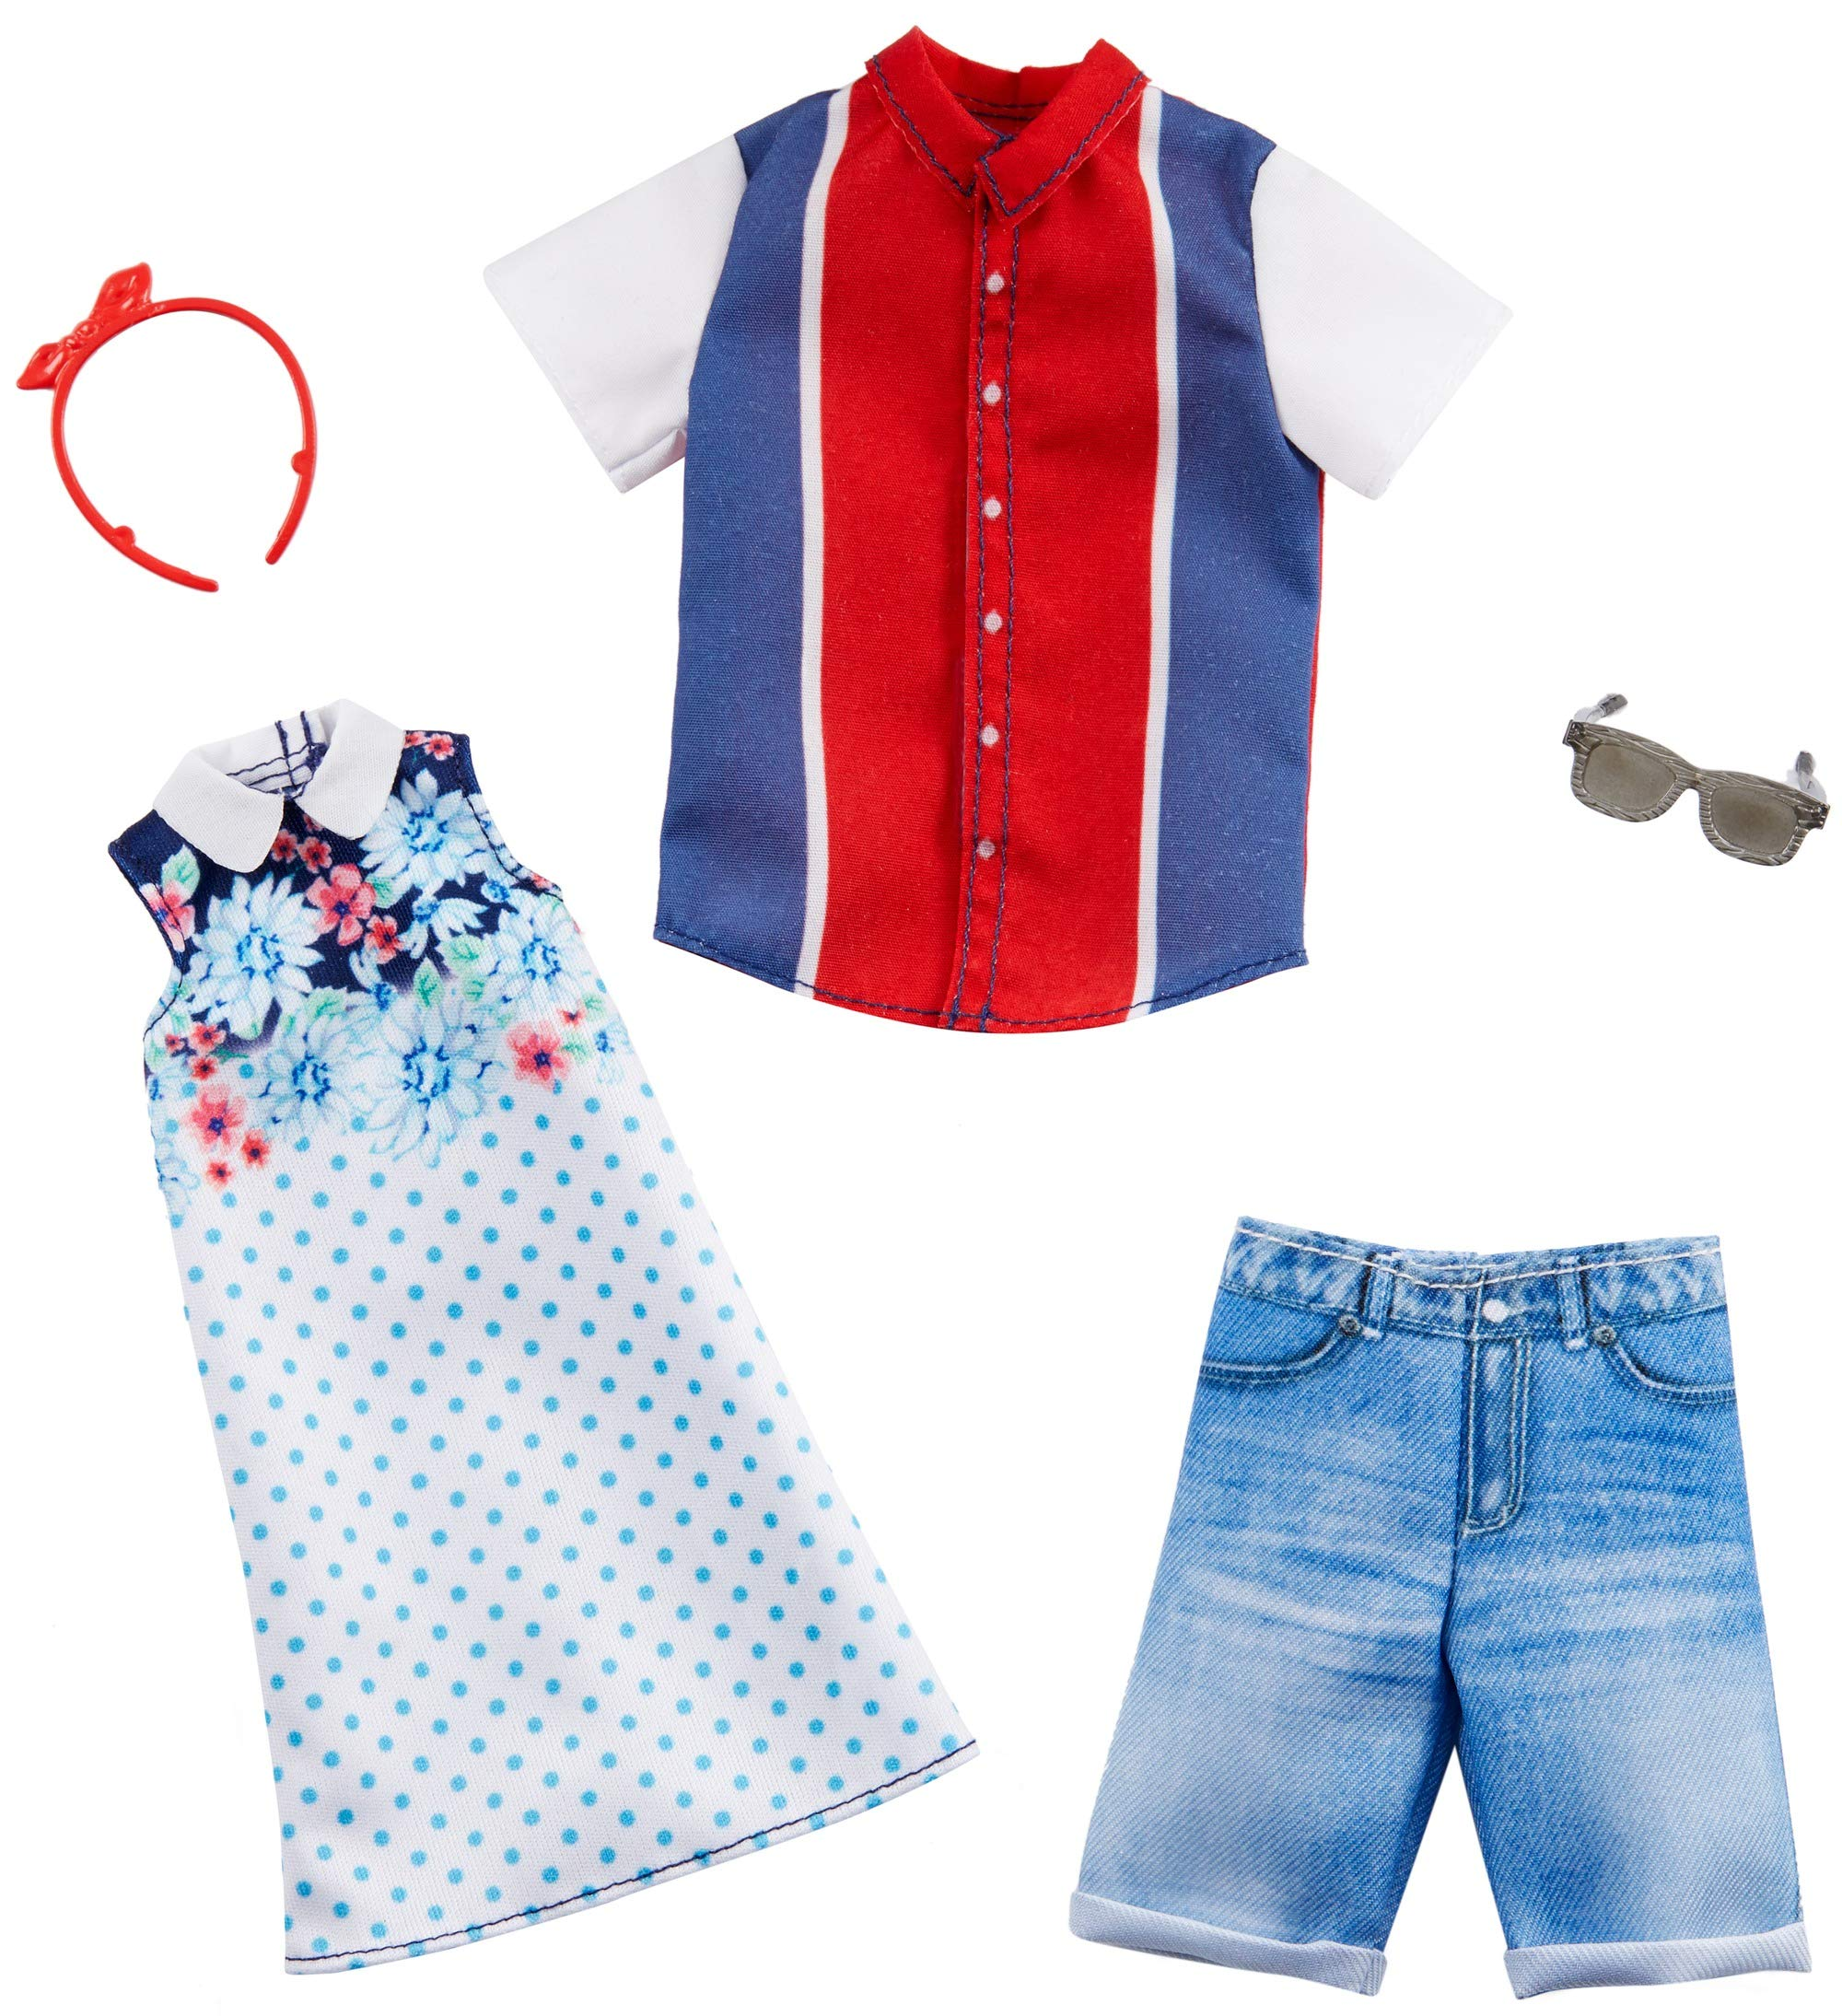 Barbie Fashion Pack with 1 Outfit of Floral Patterned Dress & 1 Accessory Doll & Striped Shirt, Shorts & Accessory for Ken Doll, Gift for 3 to 8 Year Olds